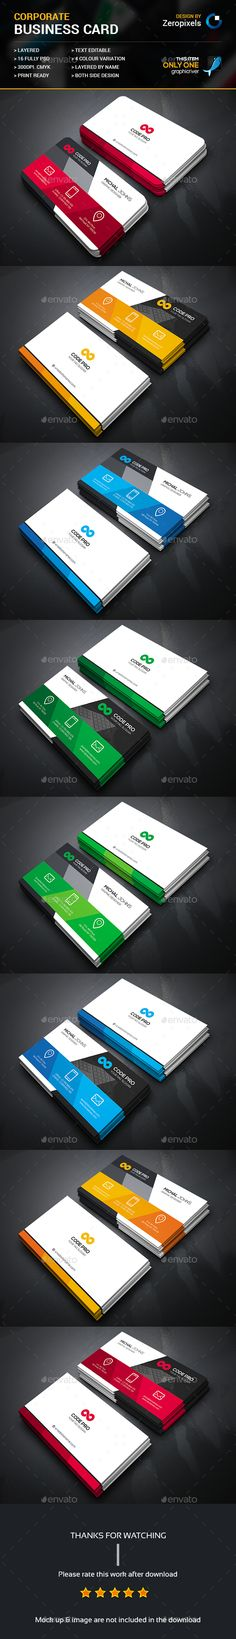 Corporate Business Card Bundle Templates PSD. Download here: http://graphicriver.net/item/corporate-business-card-bundle/16715160?ref=ksioks